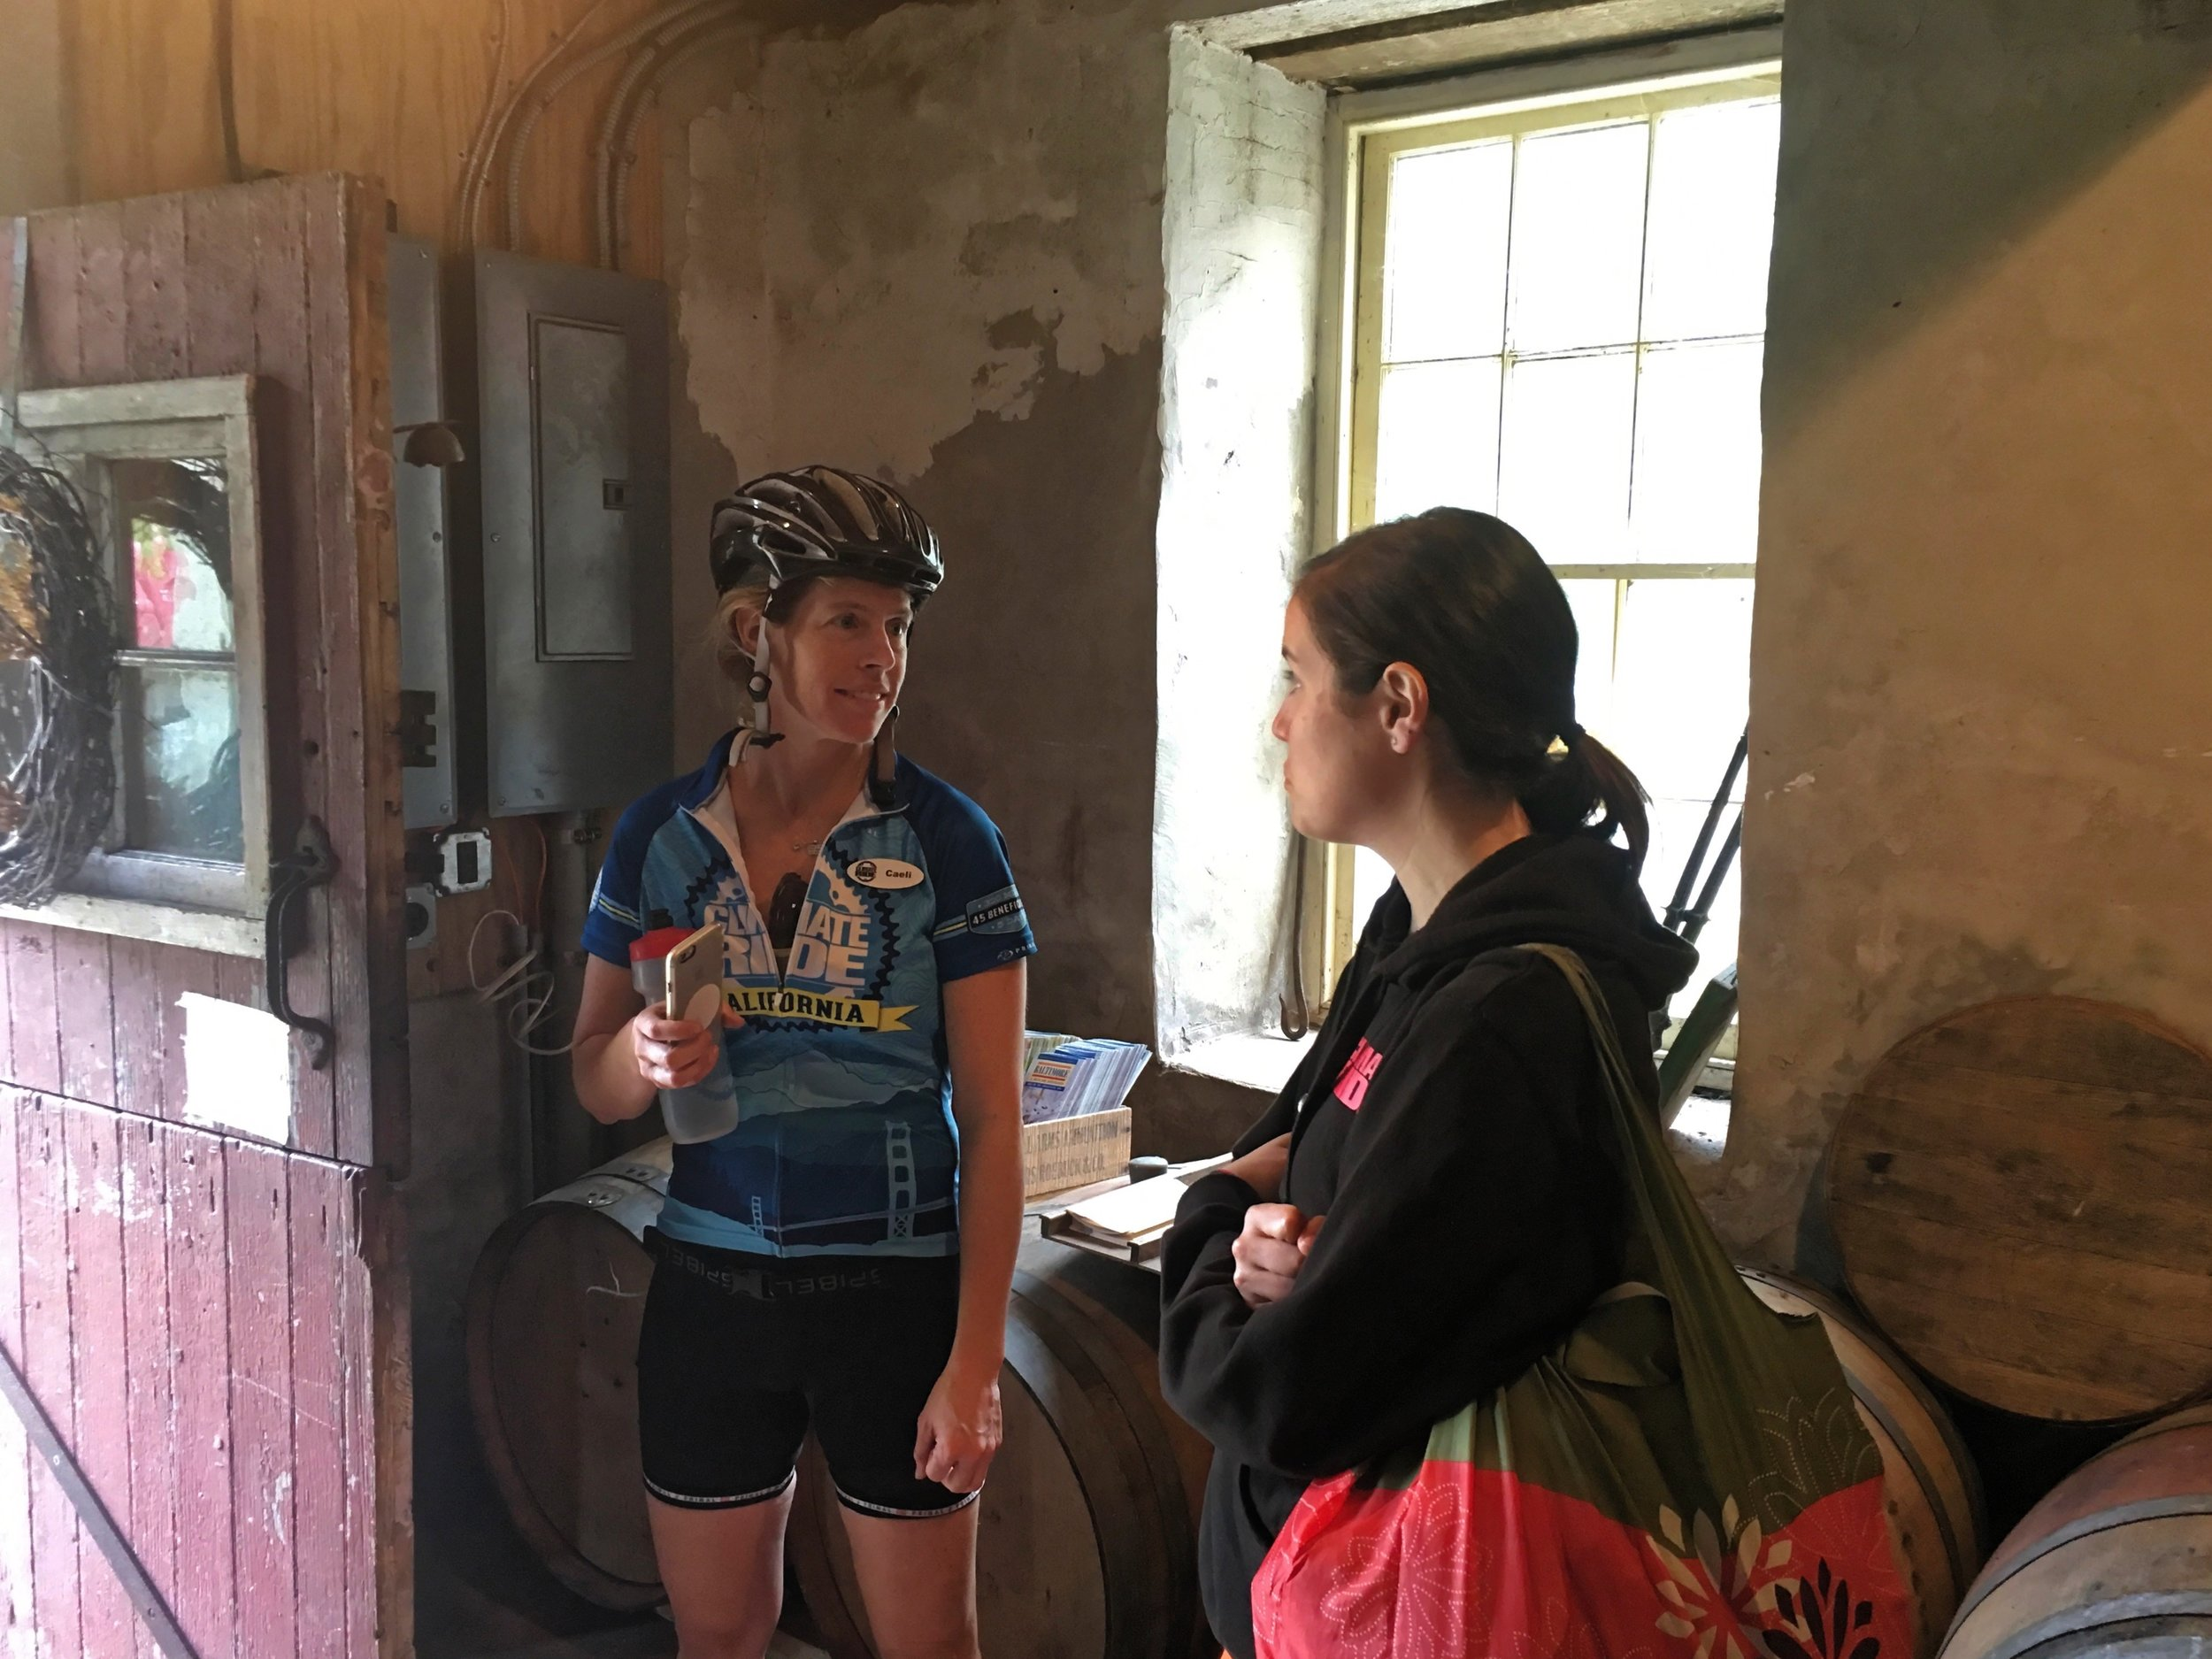 Caeli from Climate Ride talking to a rider